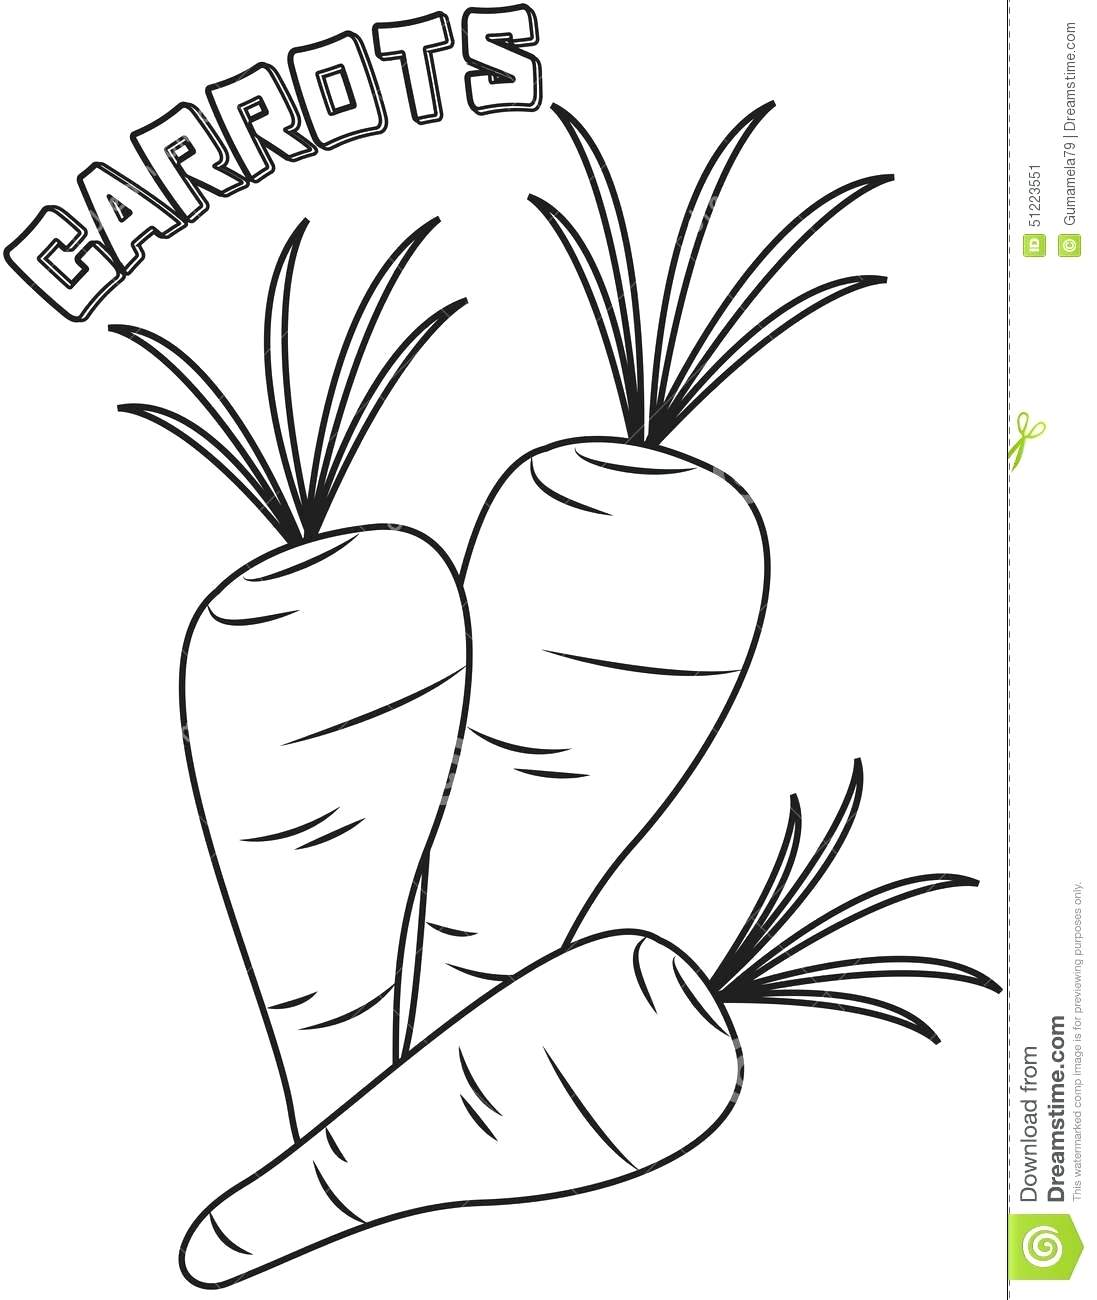 Carrots Drawing at GetDrawings.com | Free for personal use Carrots ...